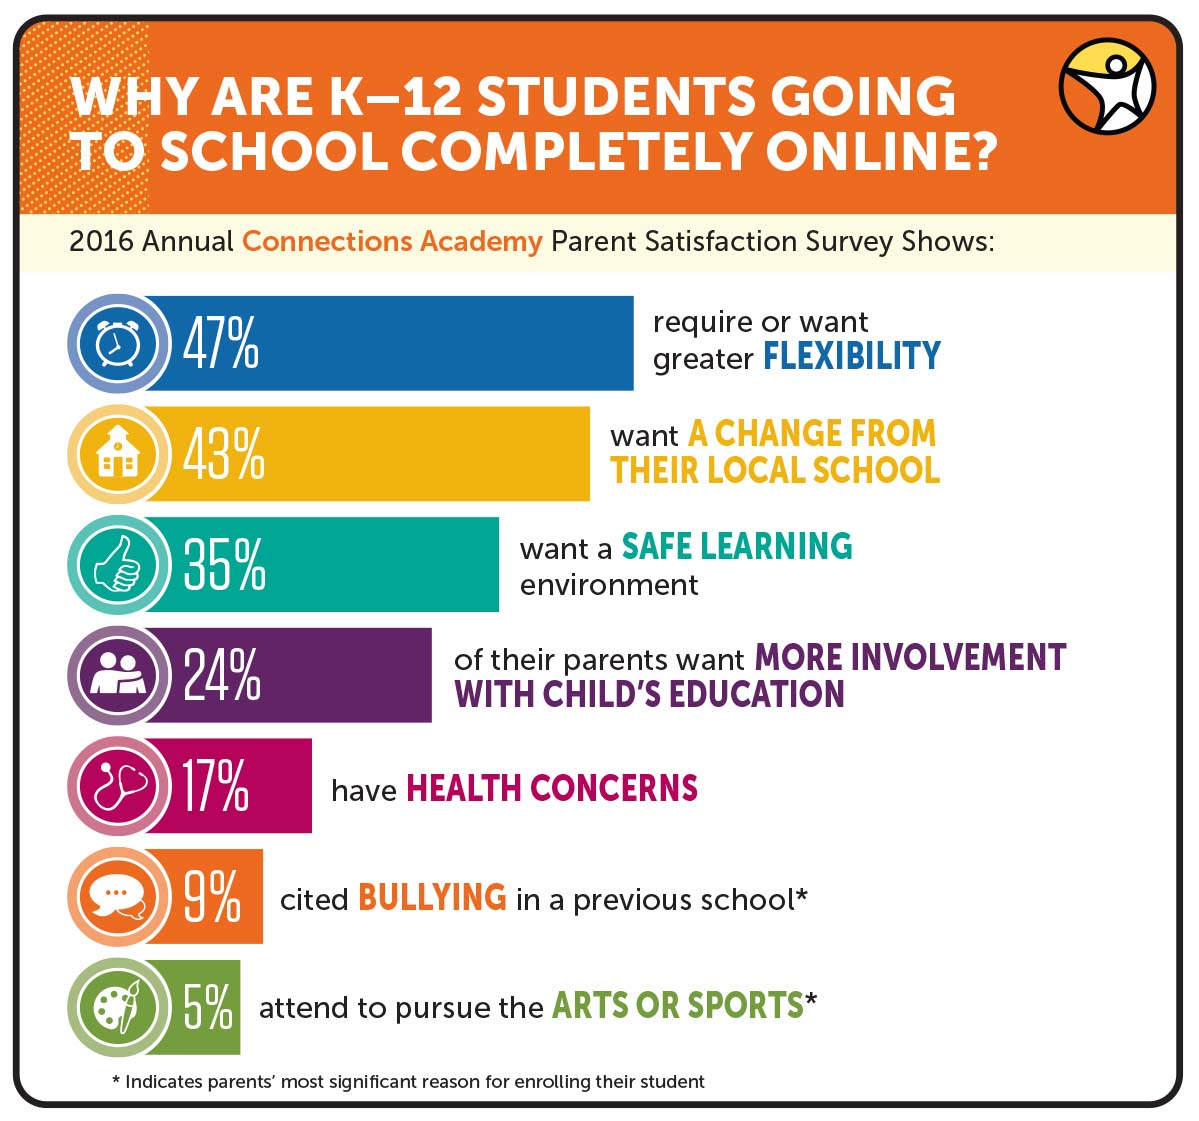 Parents share why their students are enrolled in K-12 full-time online school as part of the annual 2016 Connections Academy Parent Satisfaction Survey.